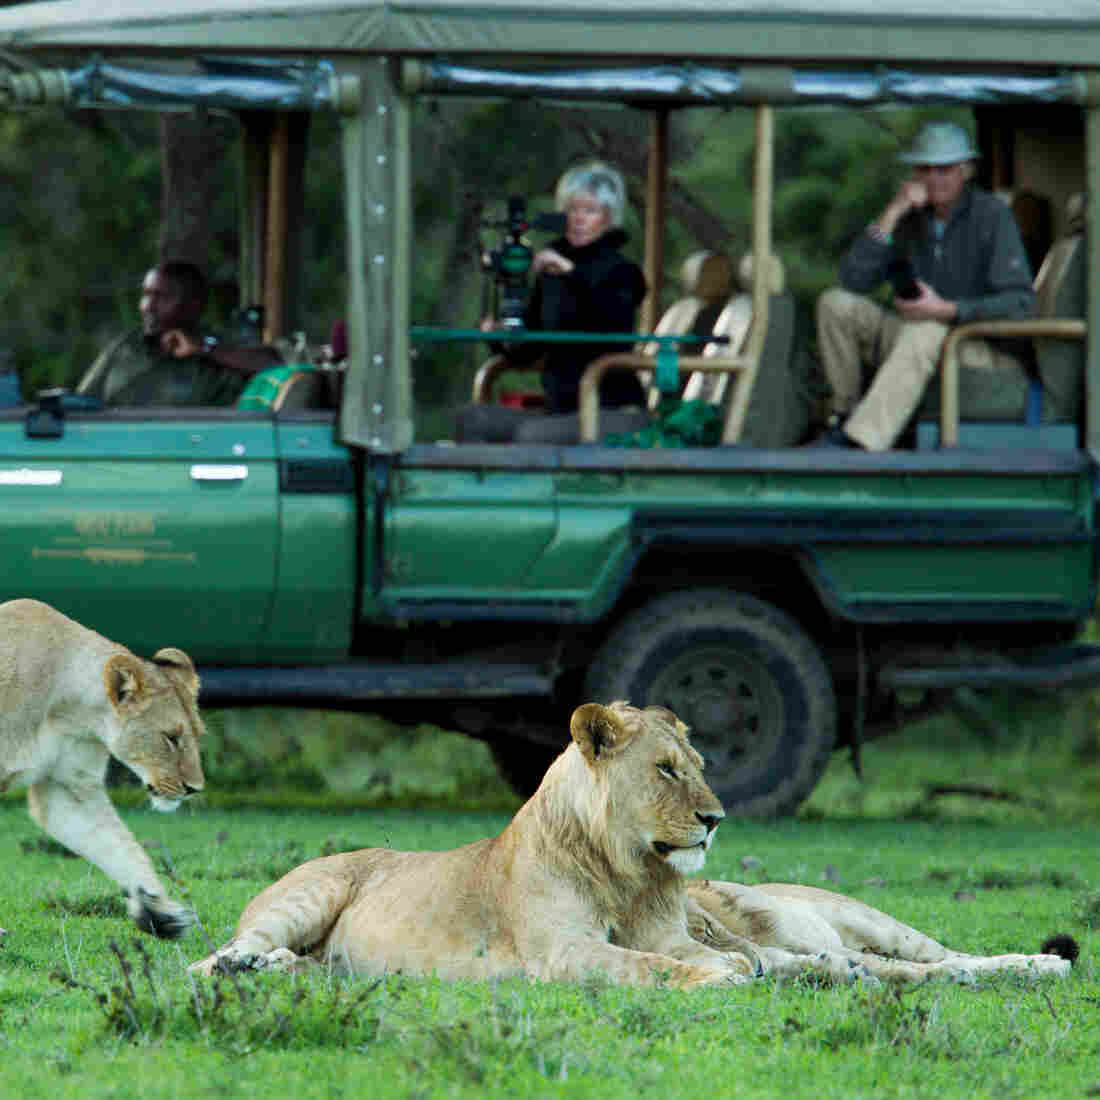 Tourists on safari watch three young lions in Kenya's Masai Mara National Reserve.